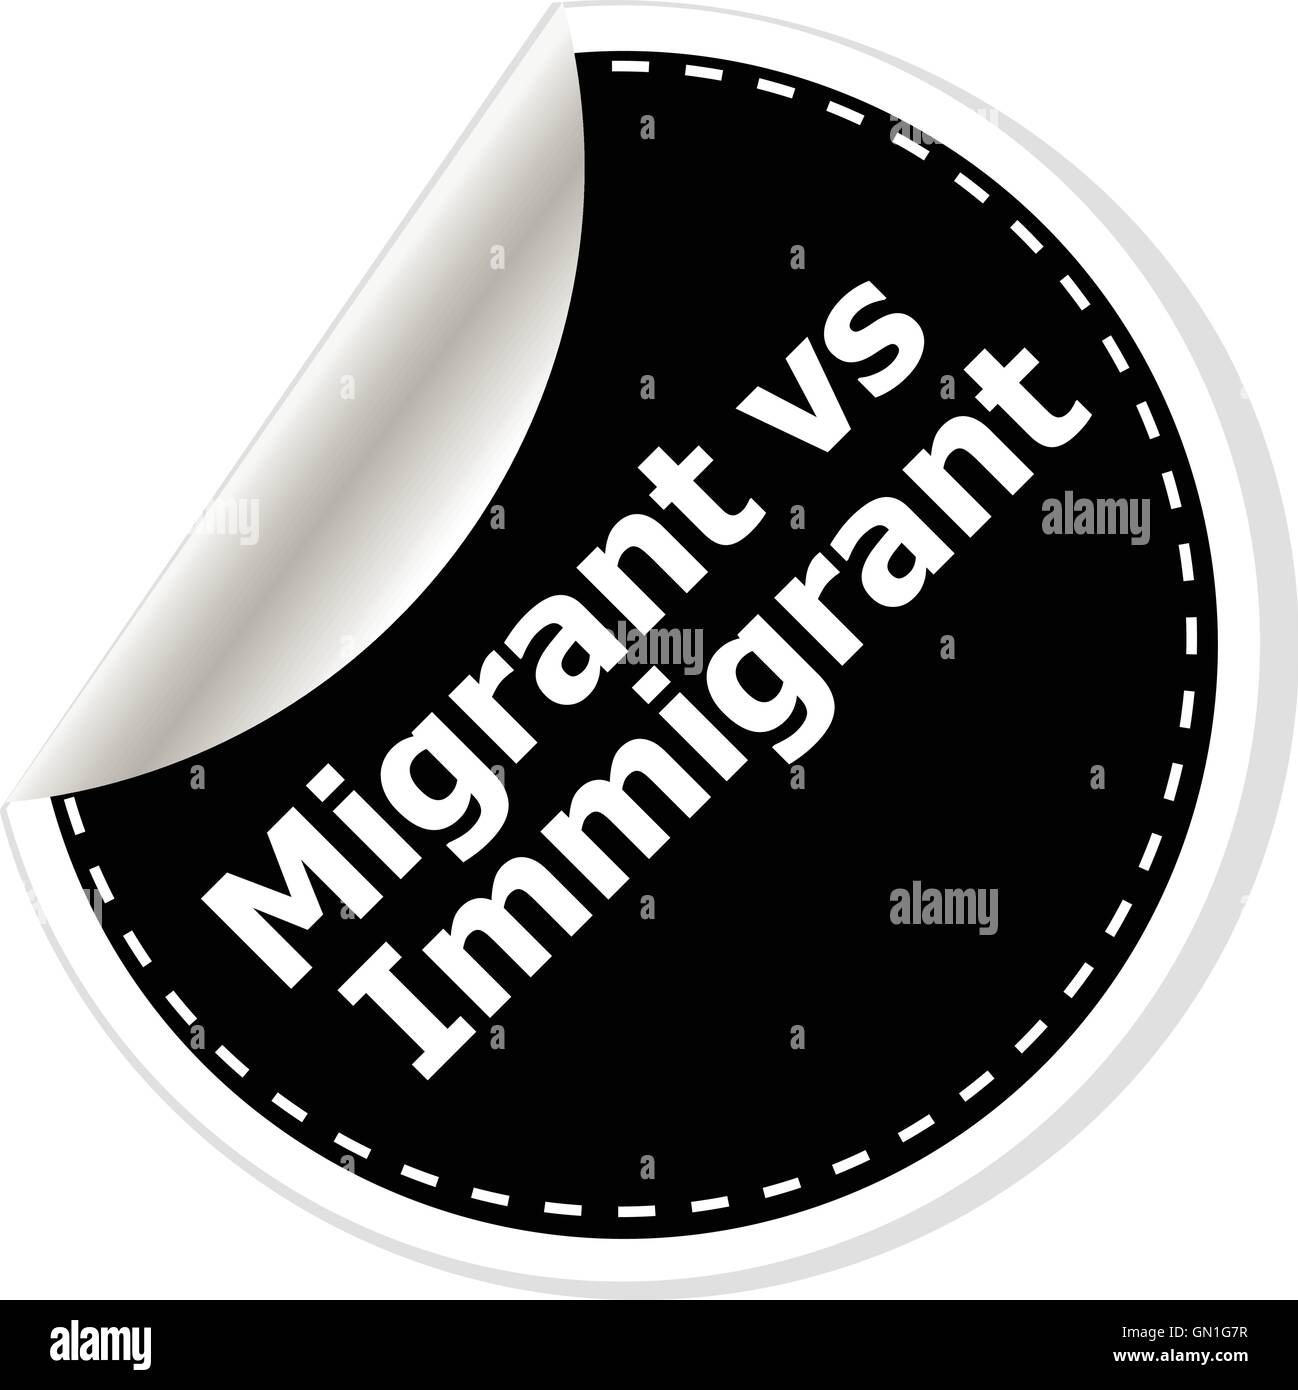 migrant vs immigrant. vector illustration of realistic stickers or notes. Black and white style. - Stock Vector